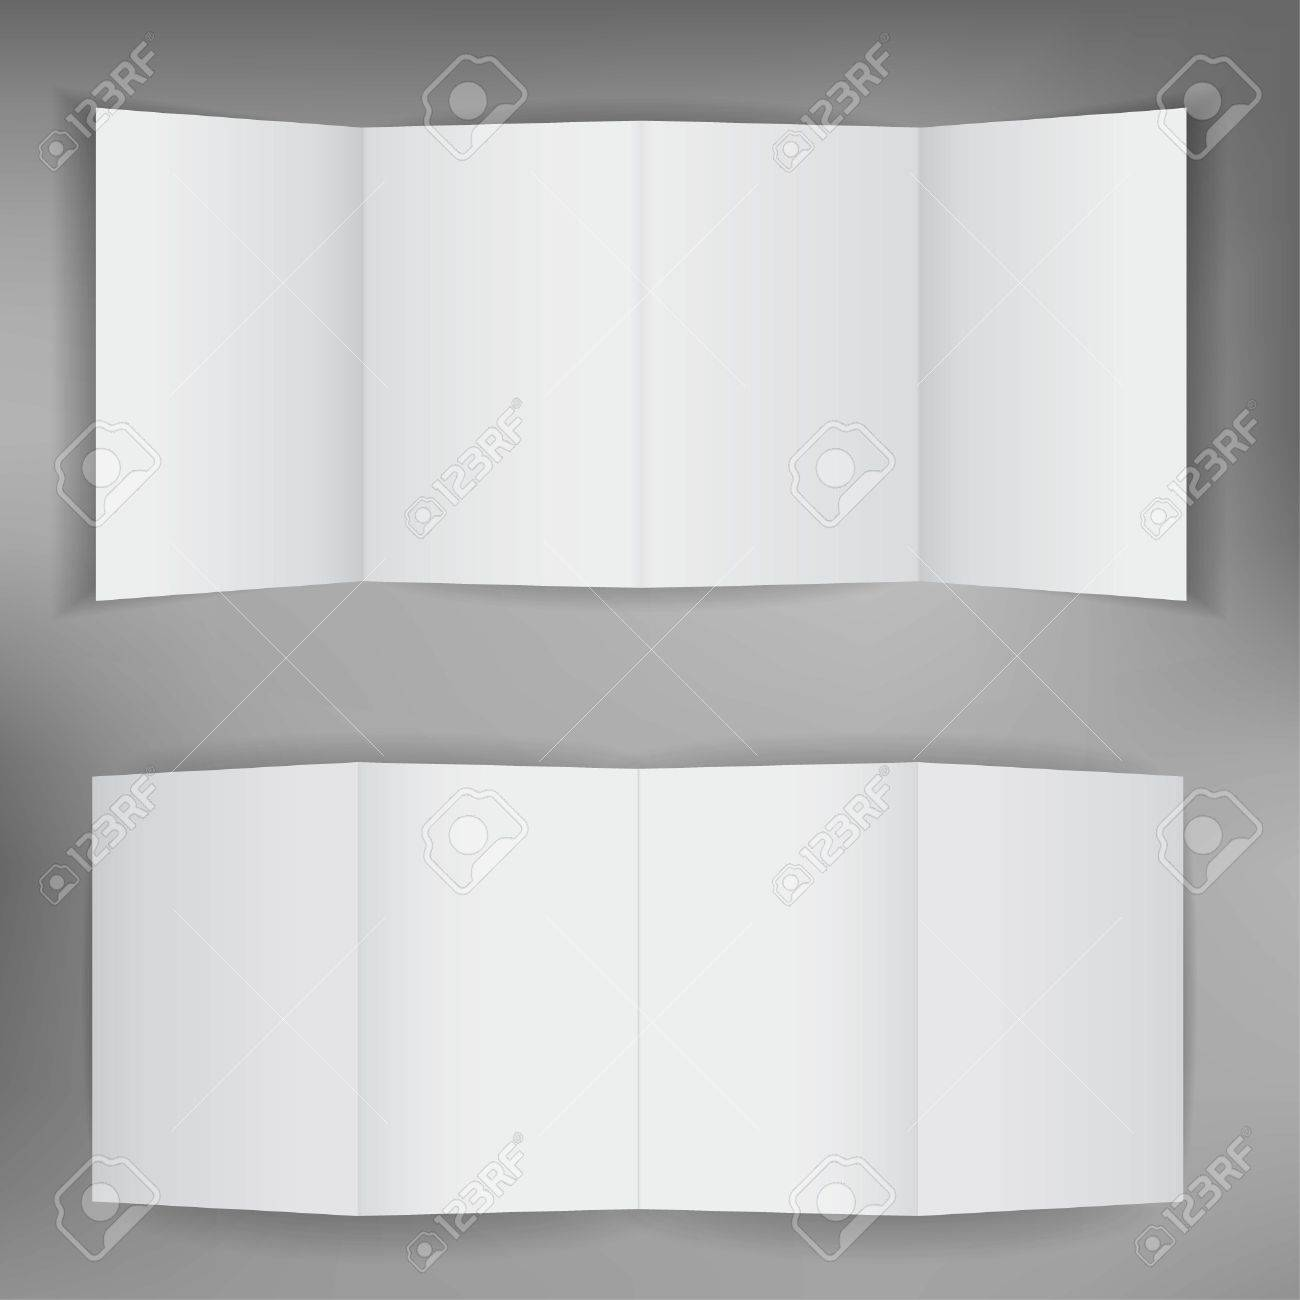 Up and down side of the blank brochure Stock Vector - 14417616